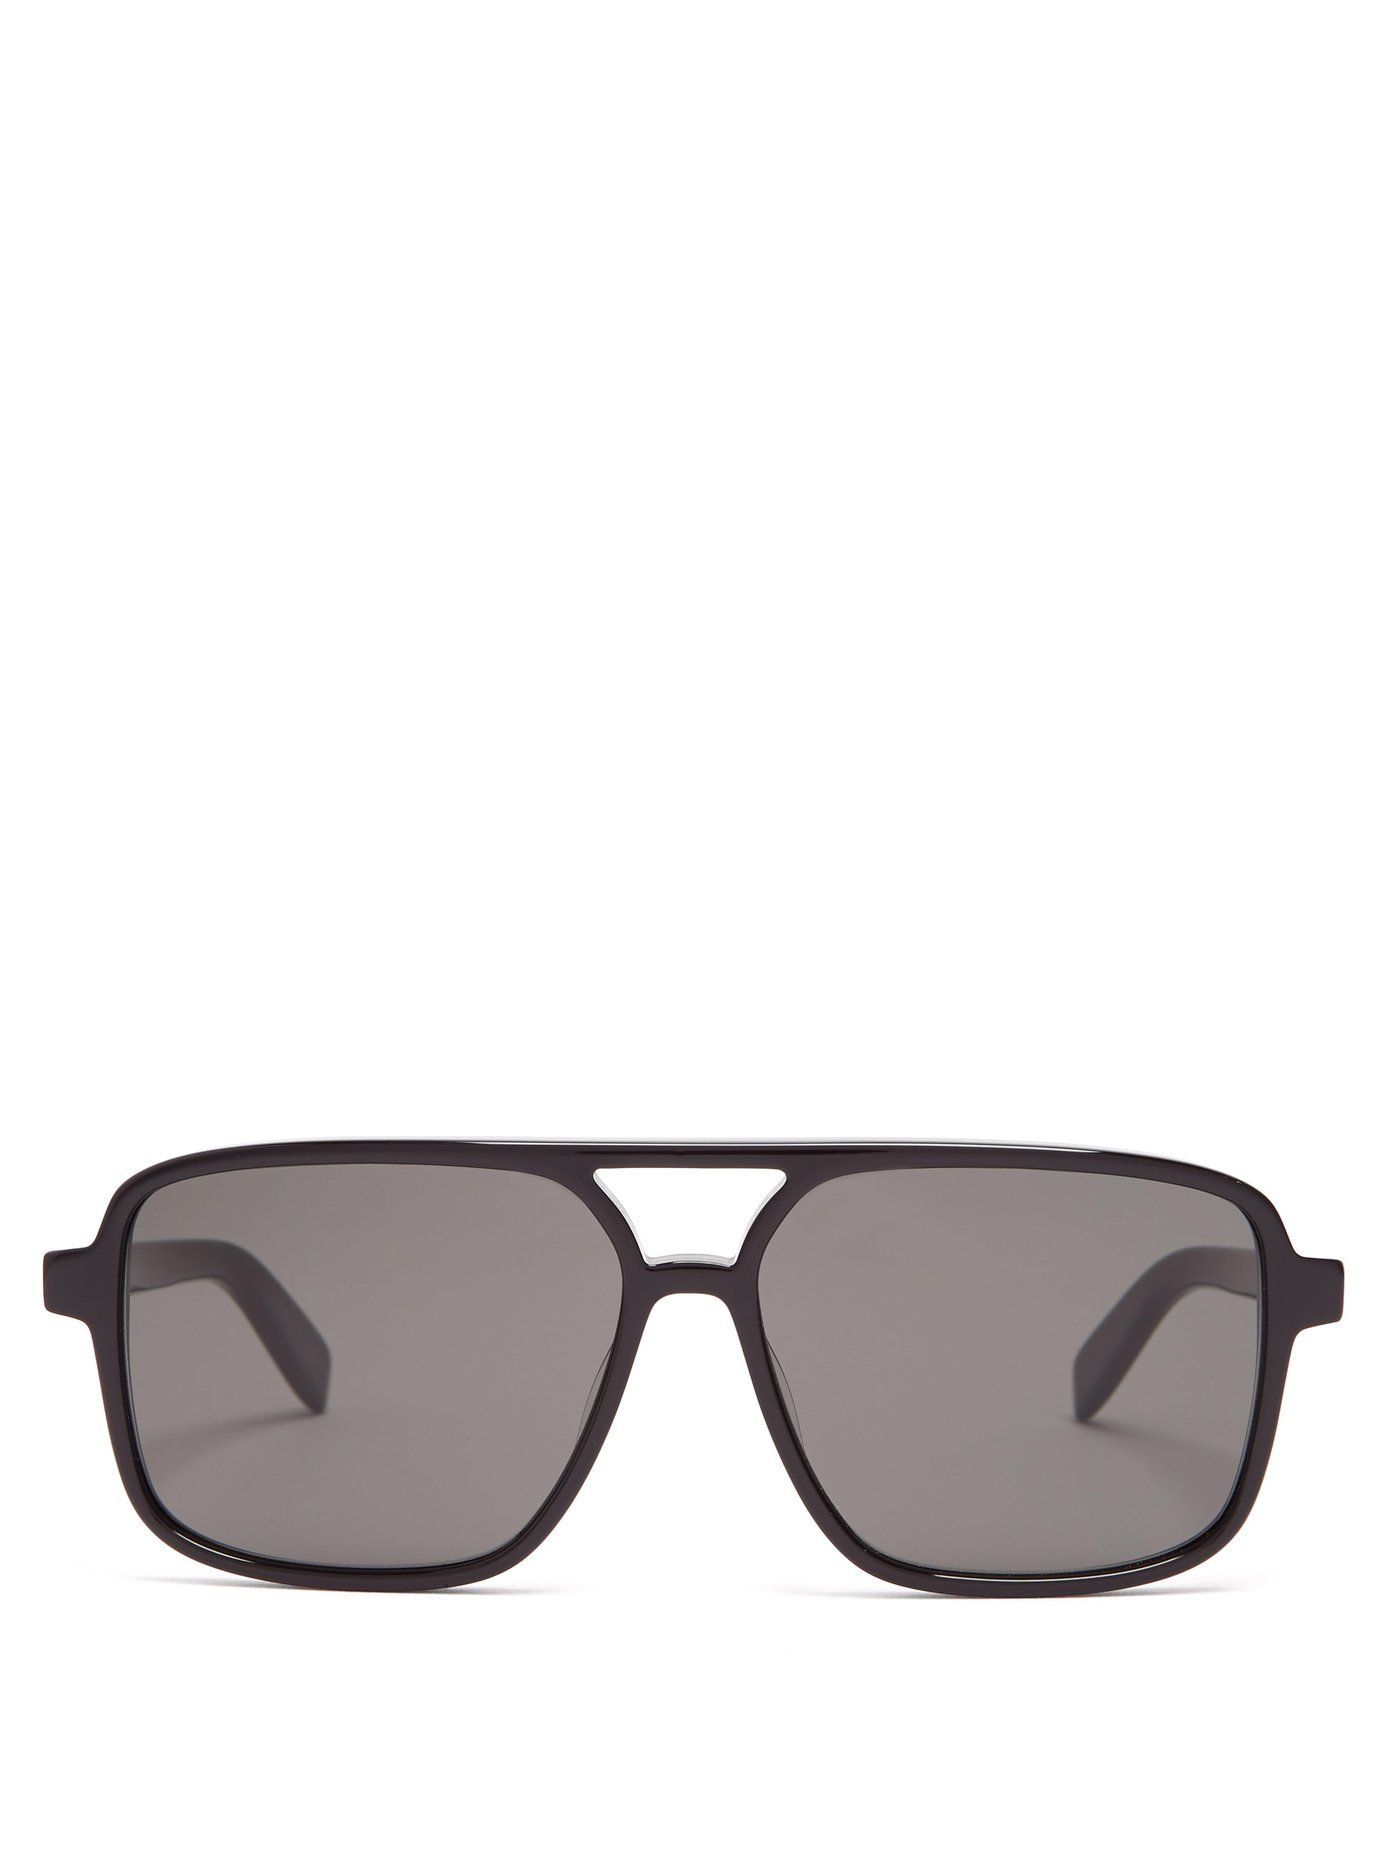 406bf1abad SAINT LAURENT D-frame acetate sunglasses